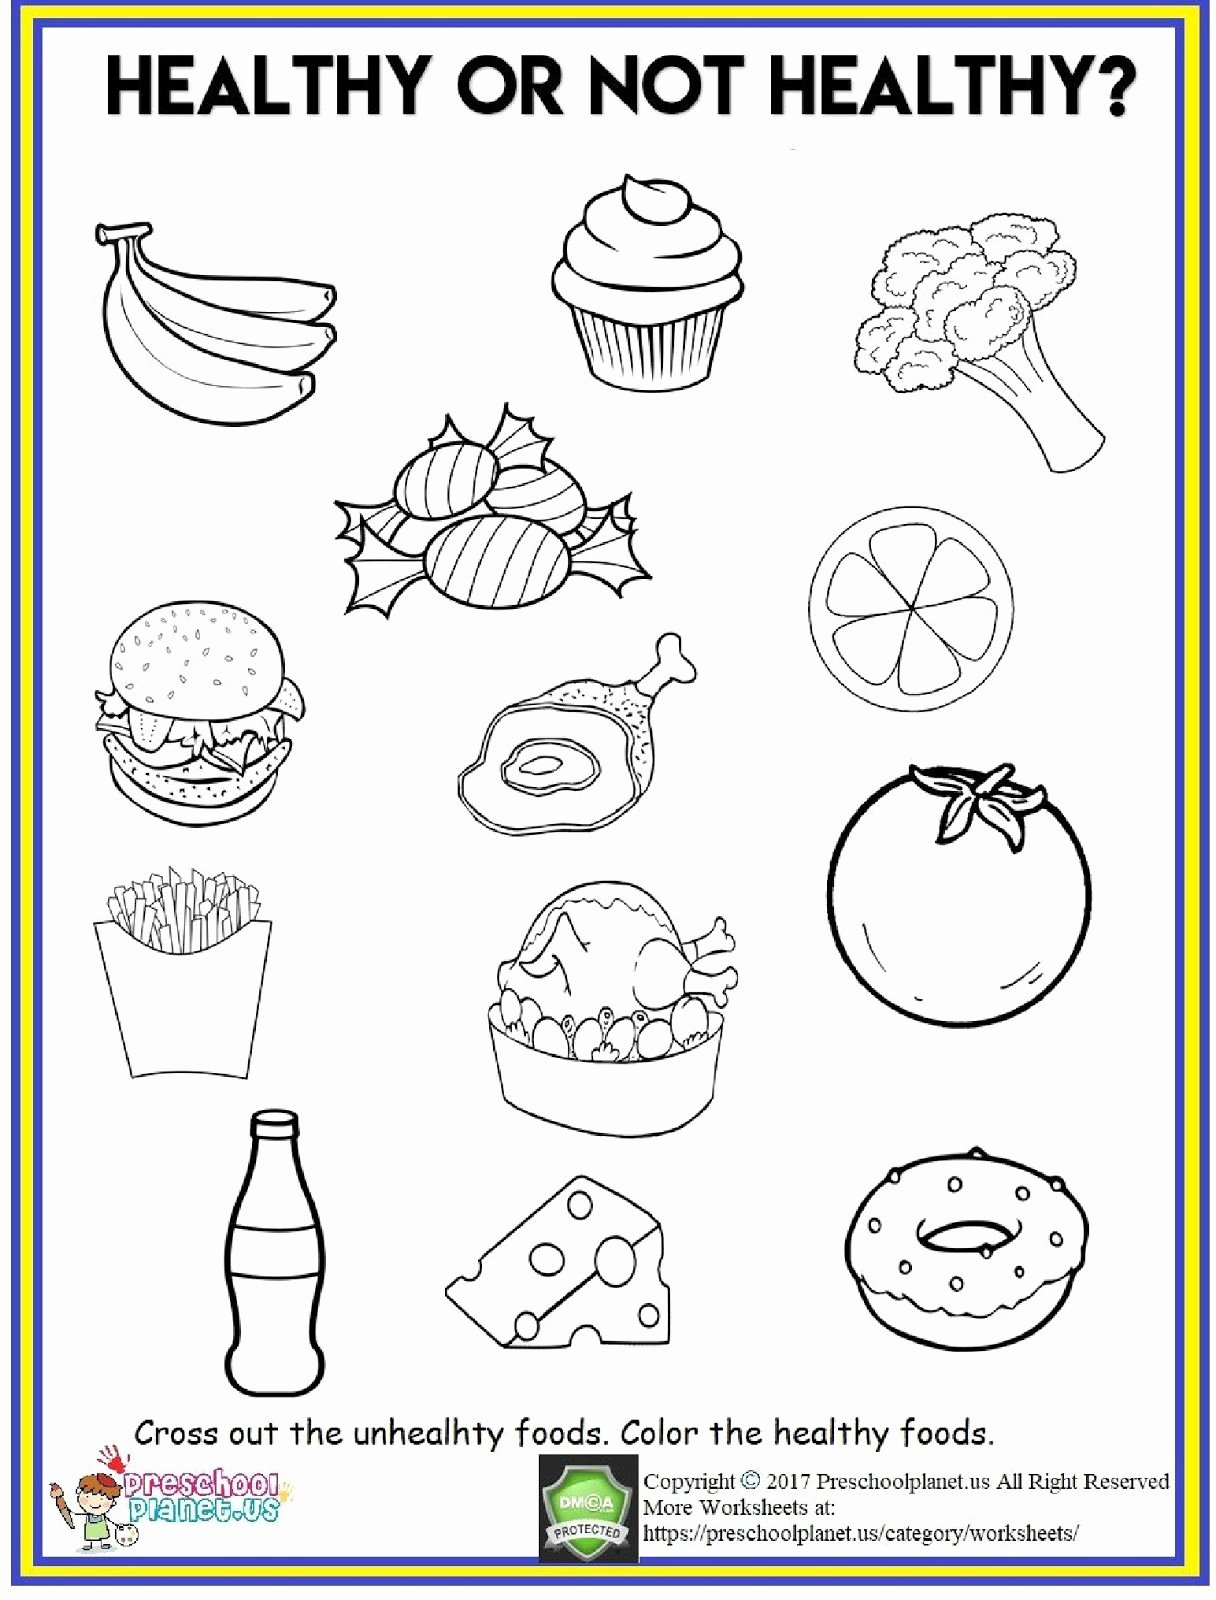 Preschool Fruits and Vegetables Worksheets Inspirational 4 Food Worksheets Preschool Fruits and Ve Ables